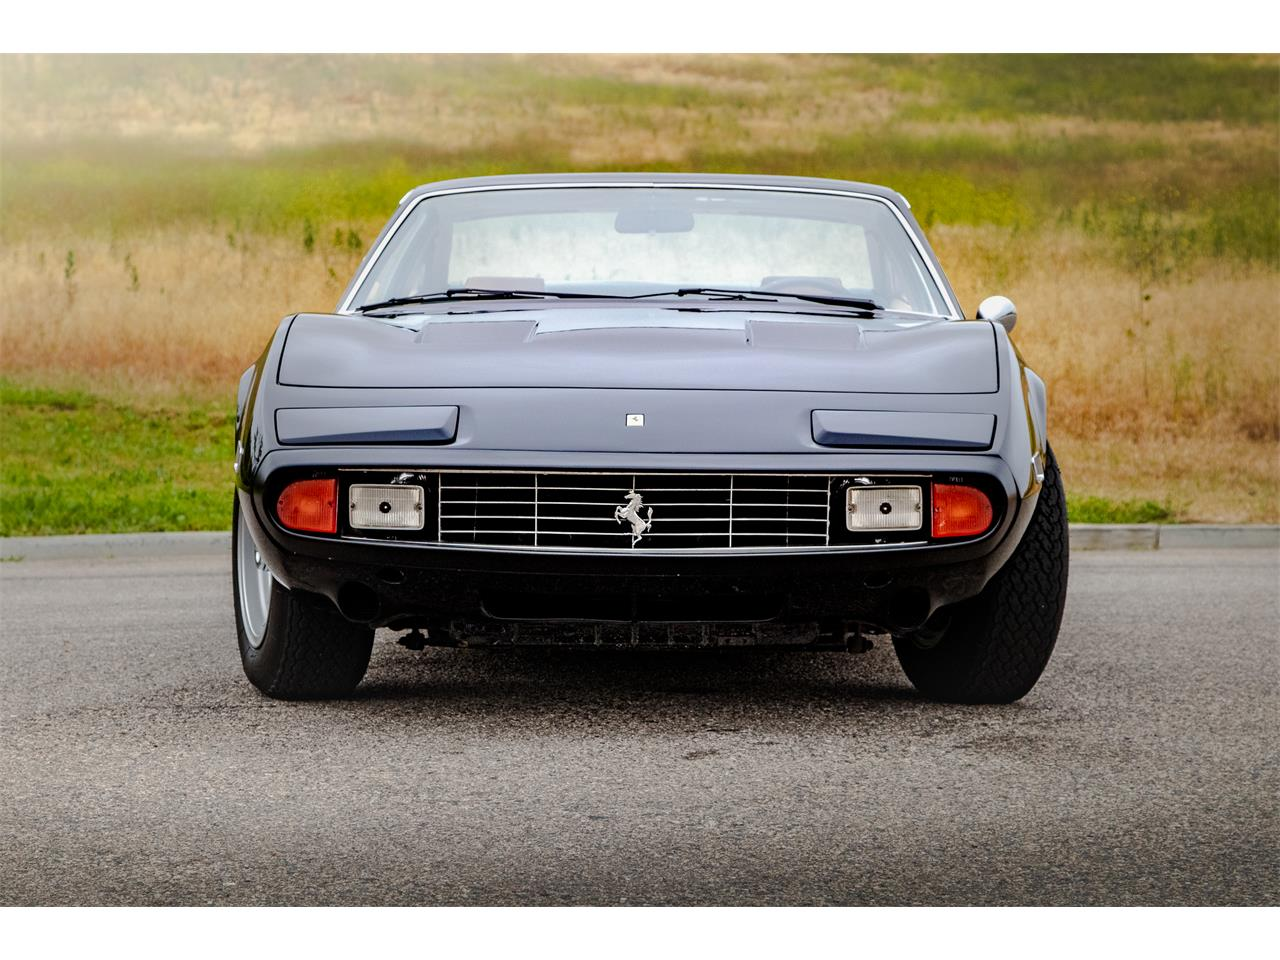 Large Picture of 1972 365 GT4 located in California - $247,500.00 Offered by Radwan Classic Cars - Q5SJ